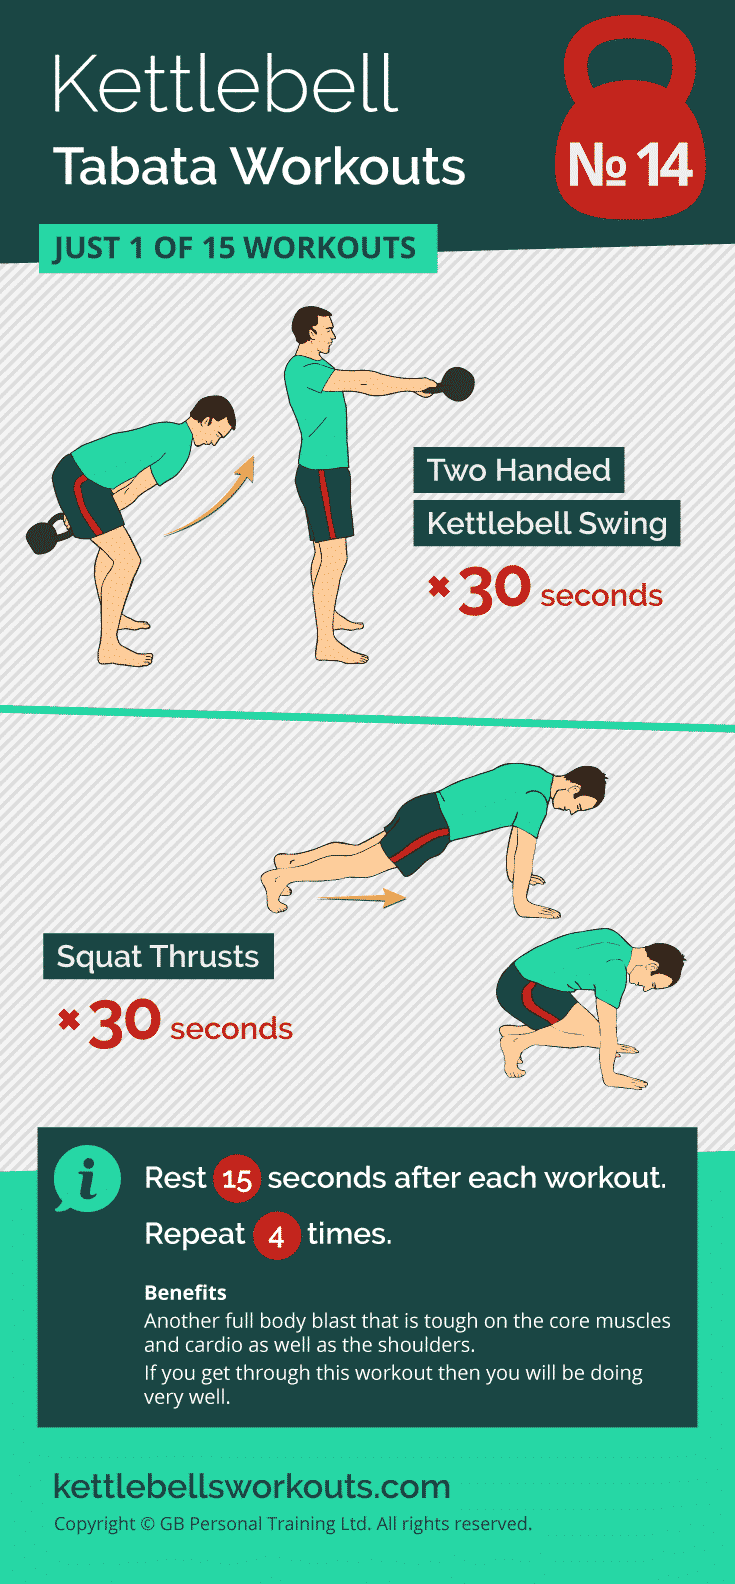 kettlebell tabata workout no.14